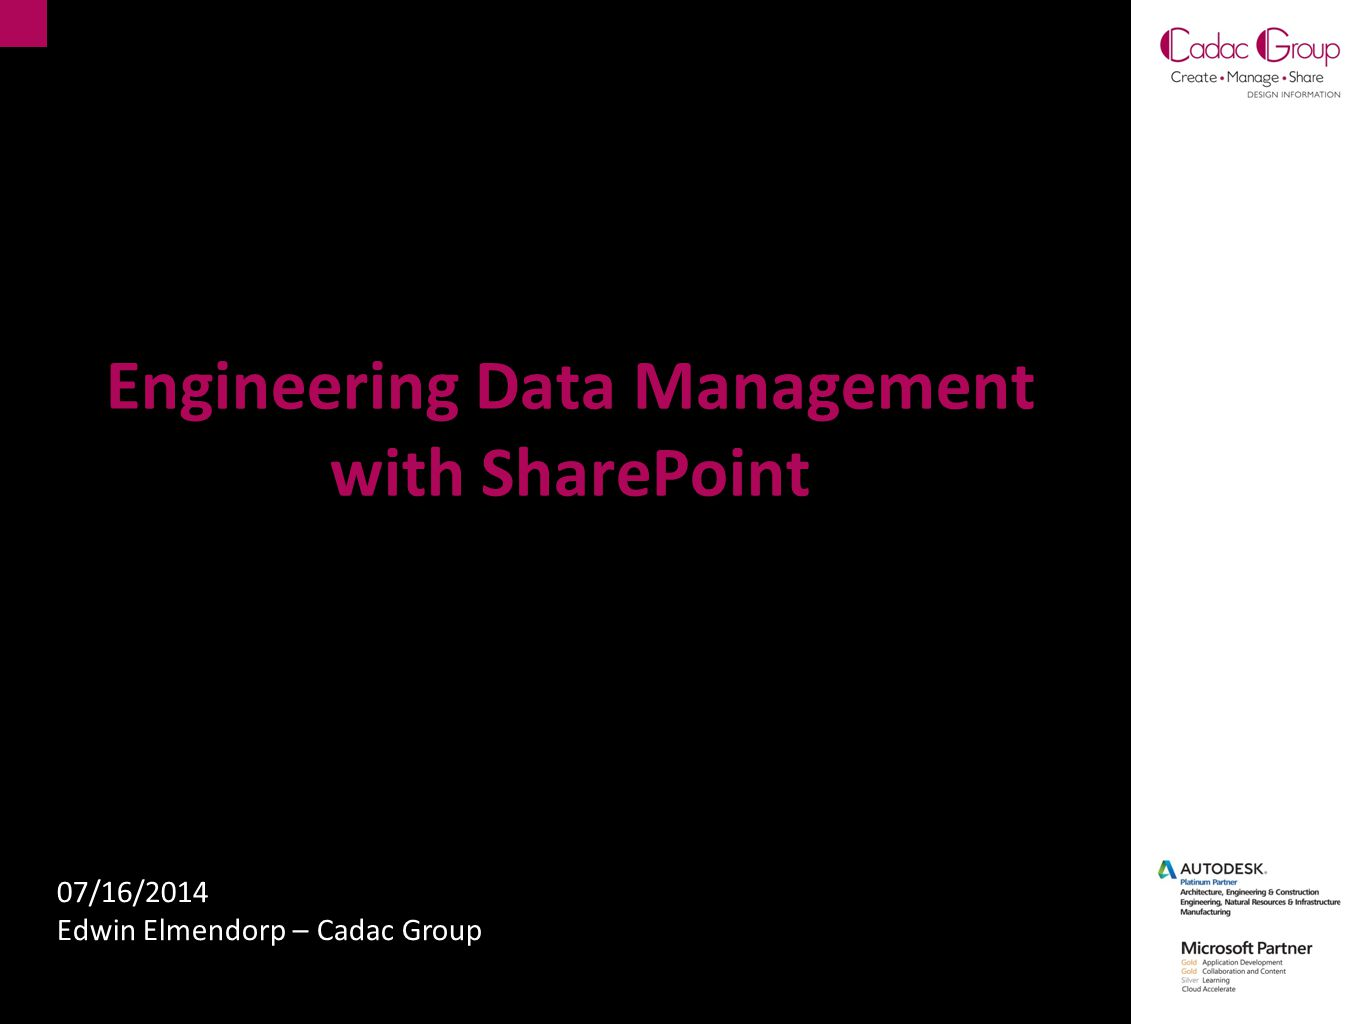 Engineering Data Management with SharePoint 07/16/2014 Edwin Elmendorp – Cadac Group